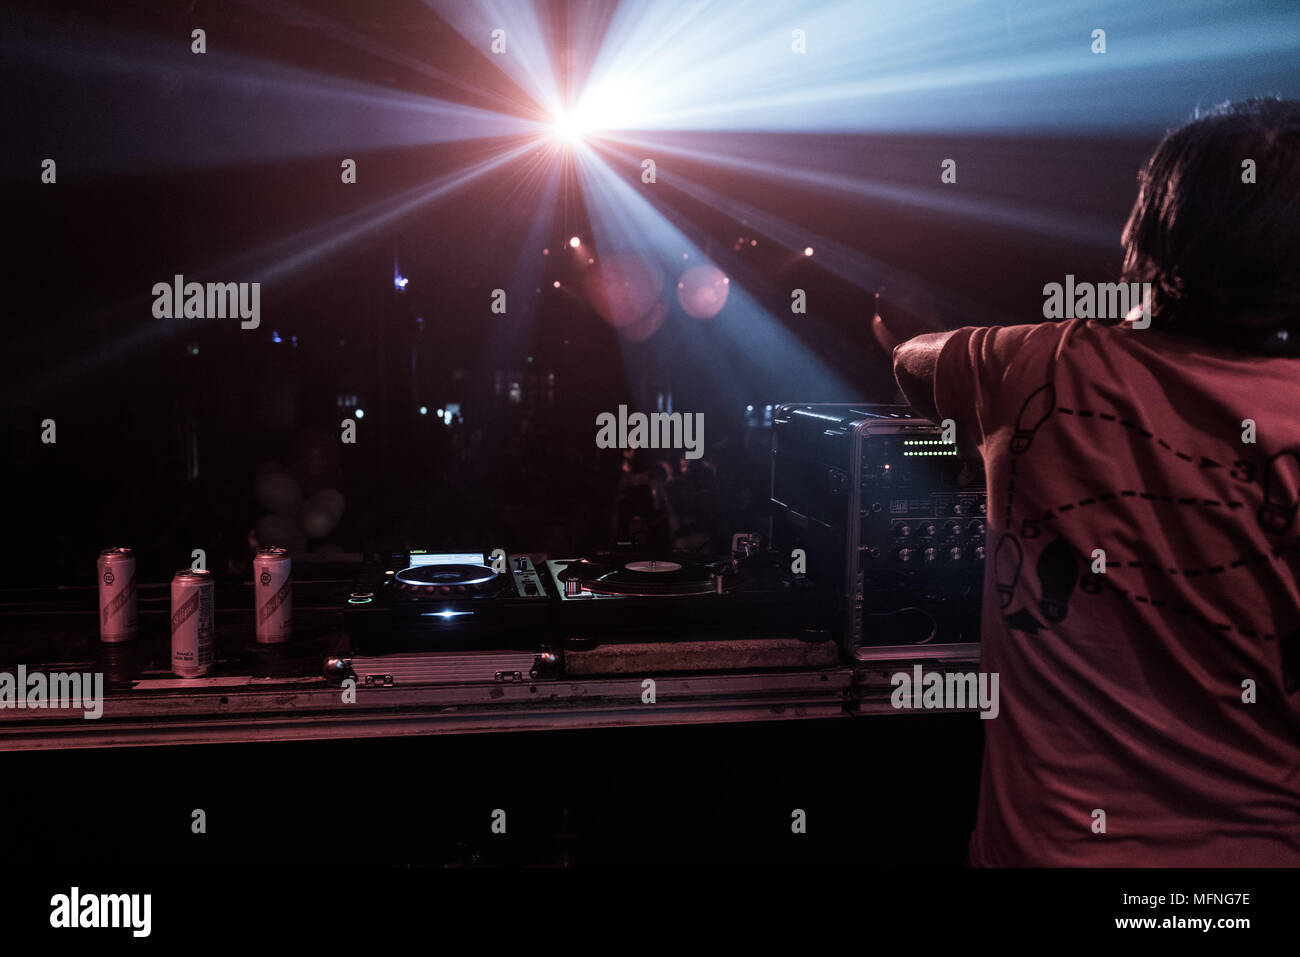 Music Shot DJ and Audience Light show with flair - Stock Image